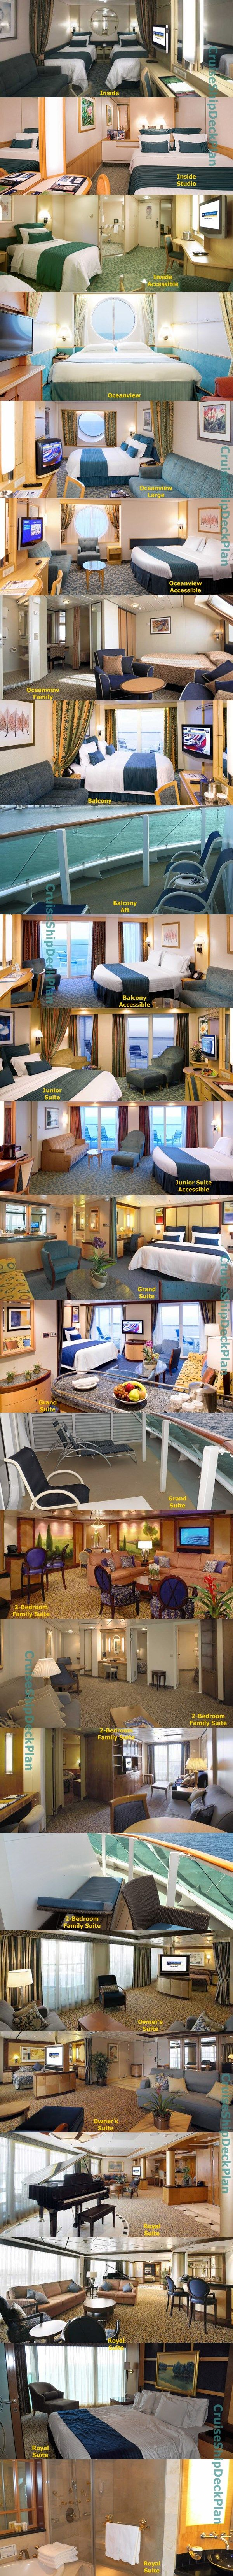 Royal Caribbean Jewel of the Seas cabins and suites photos